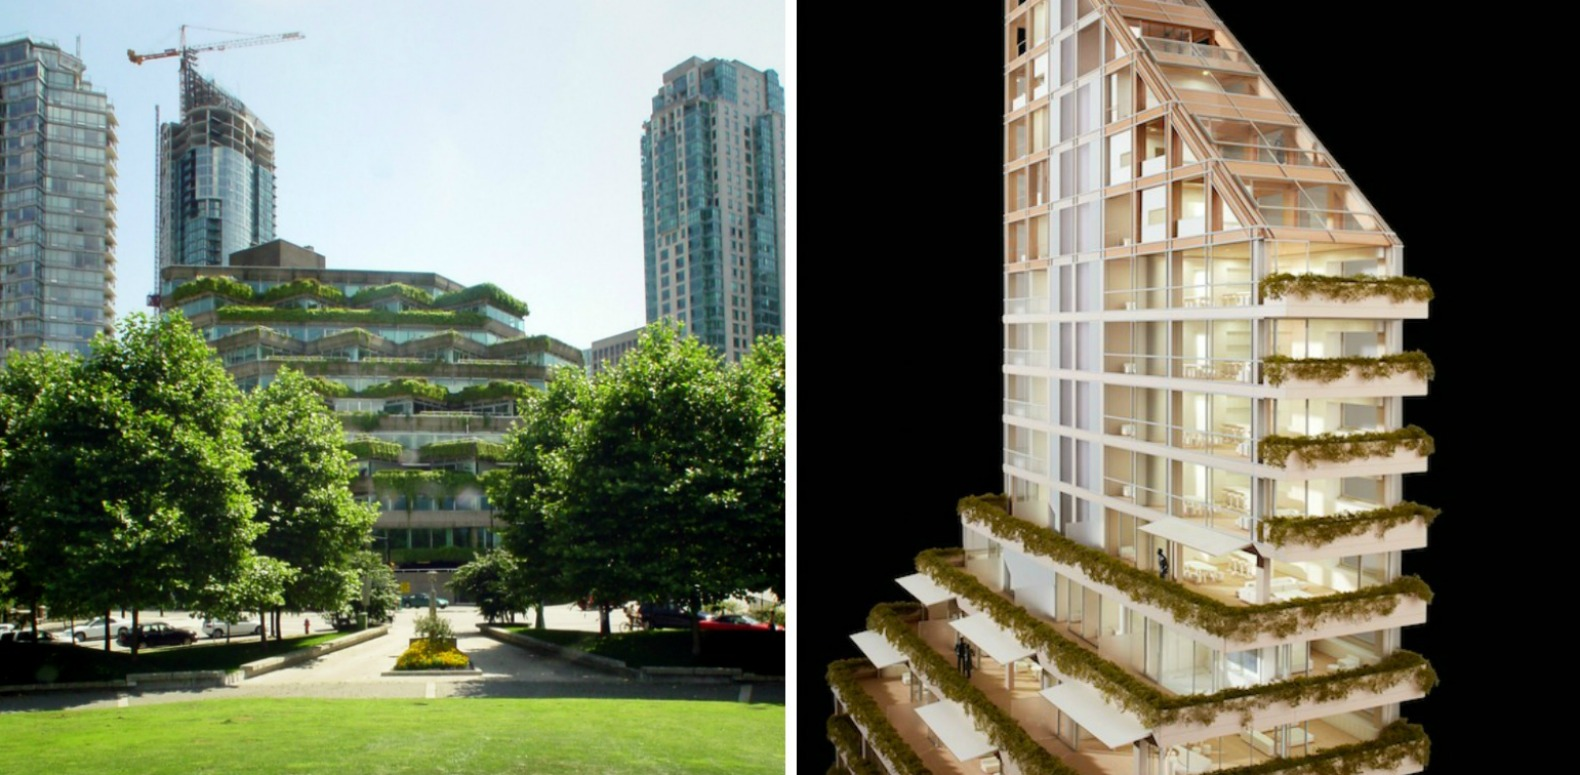 Shigeru ban architects unveil plans for the world s for Terrace house 1